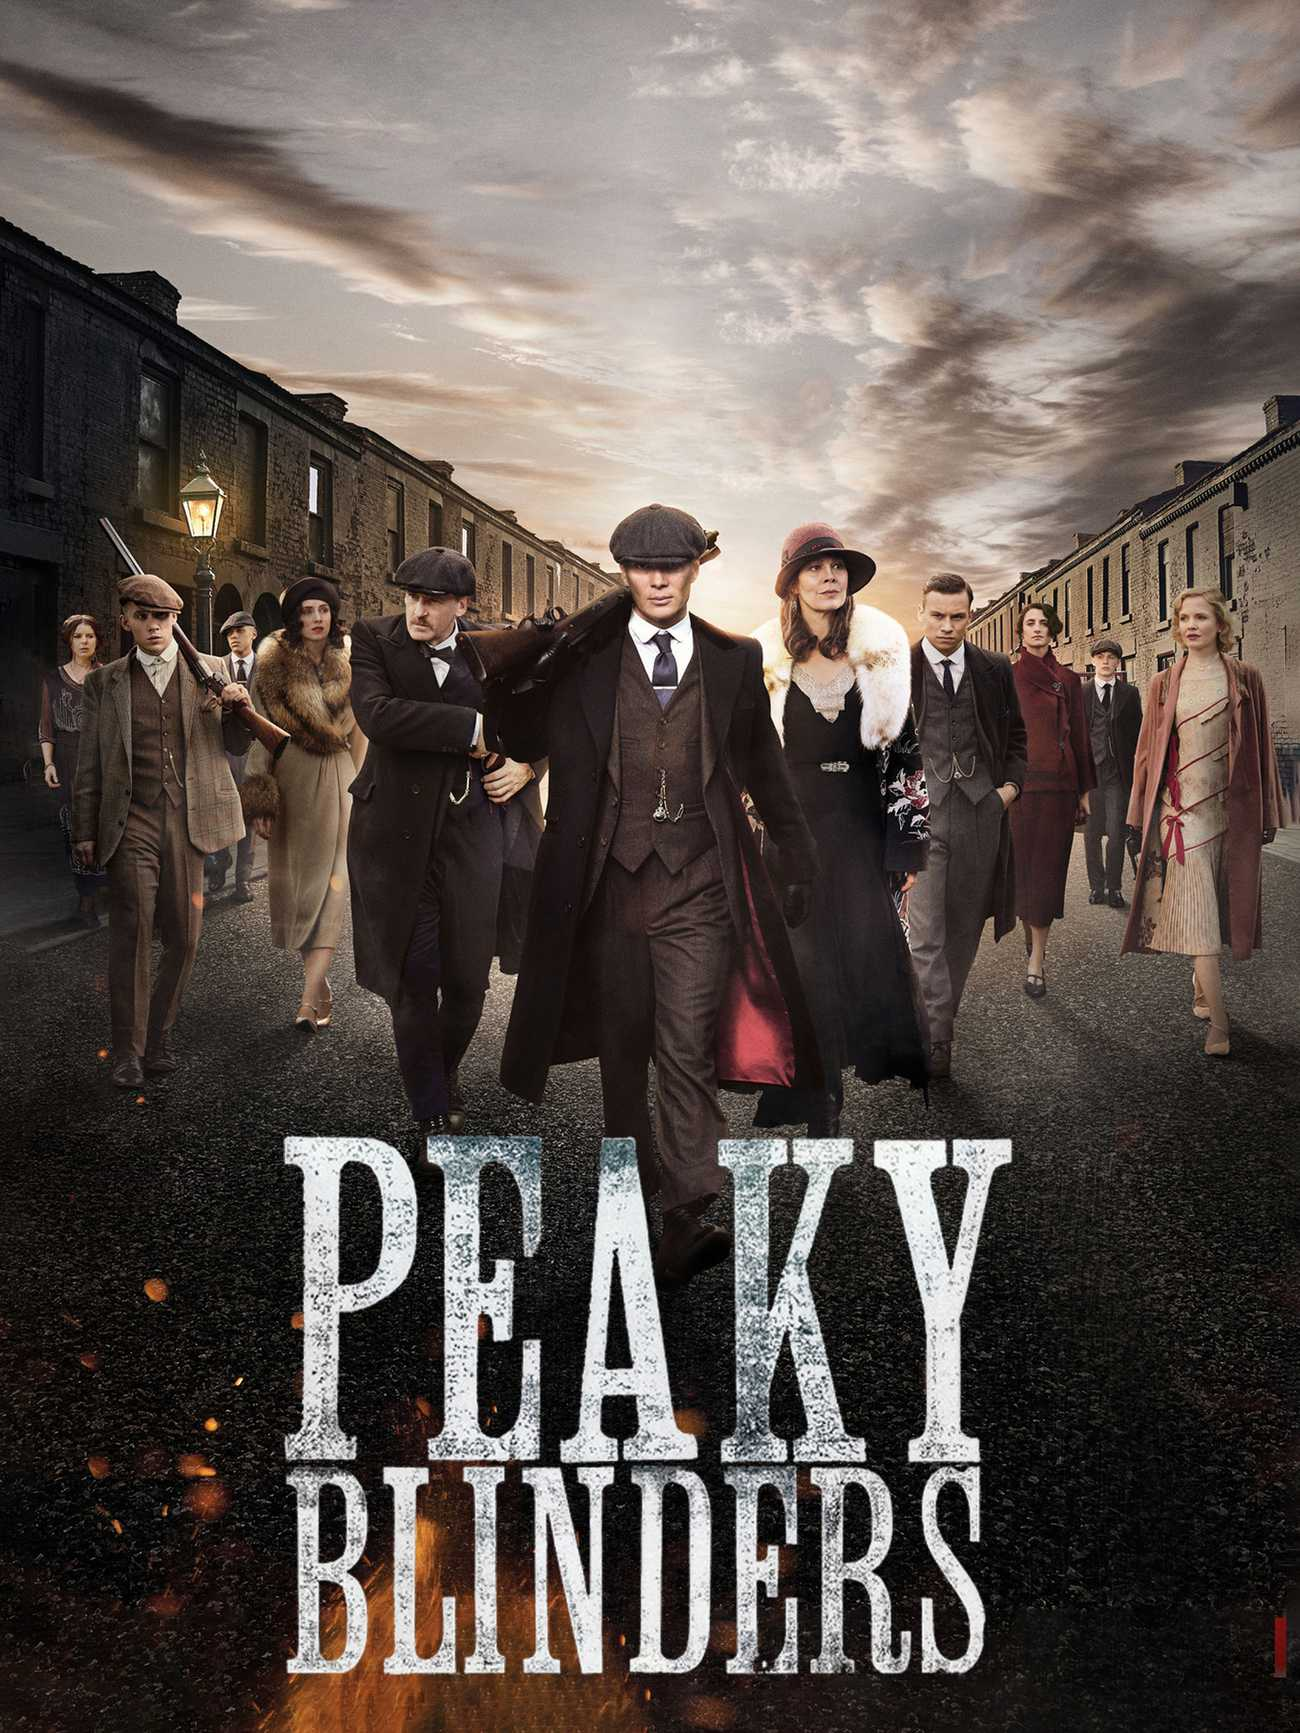 peaky-blinders-season-4-ซับไทย